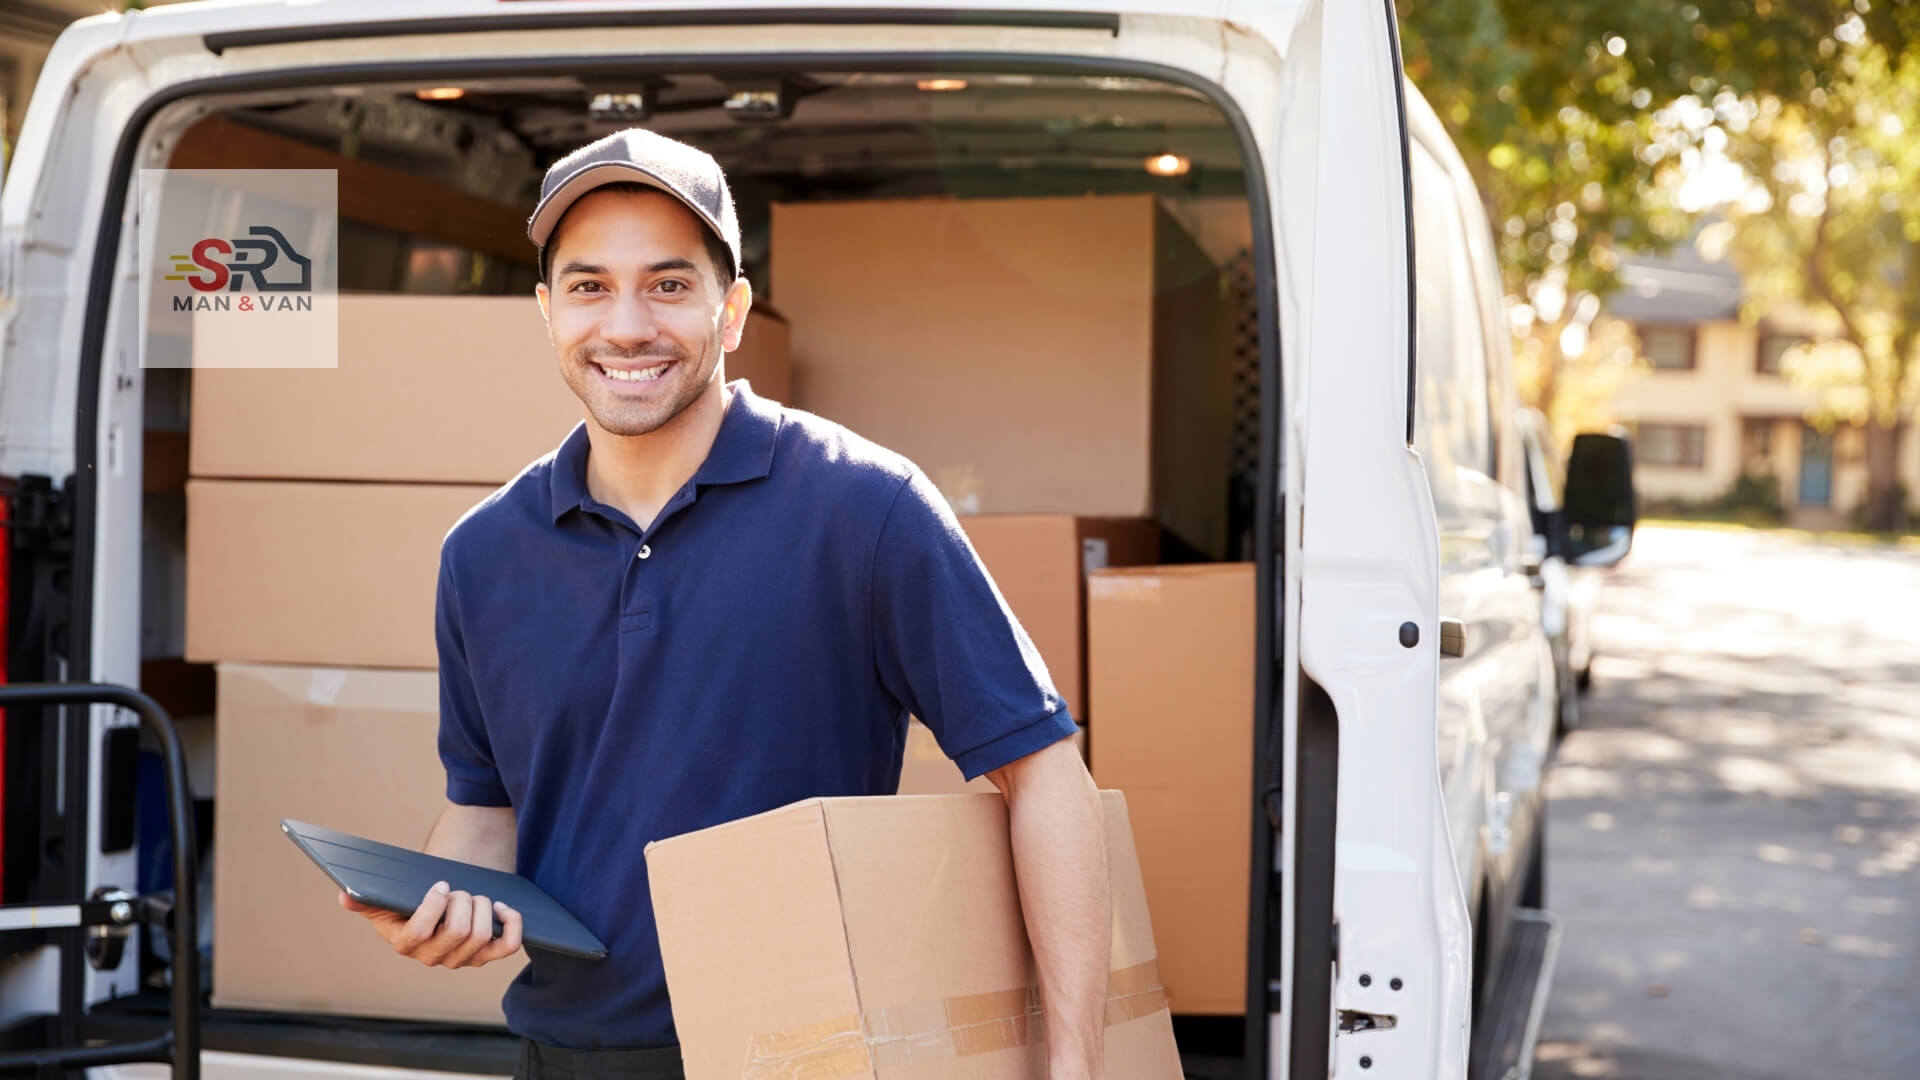 man and van courier service